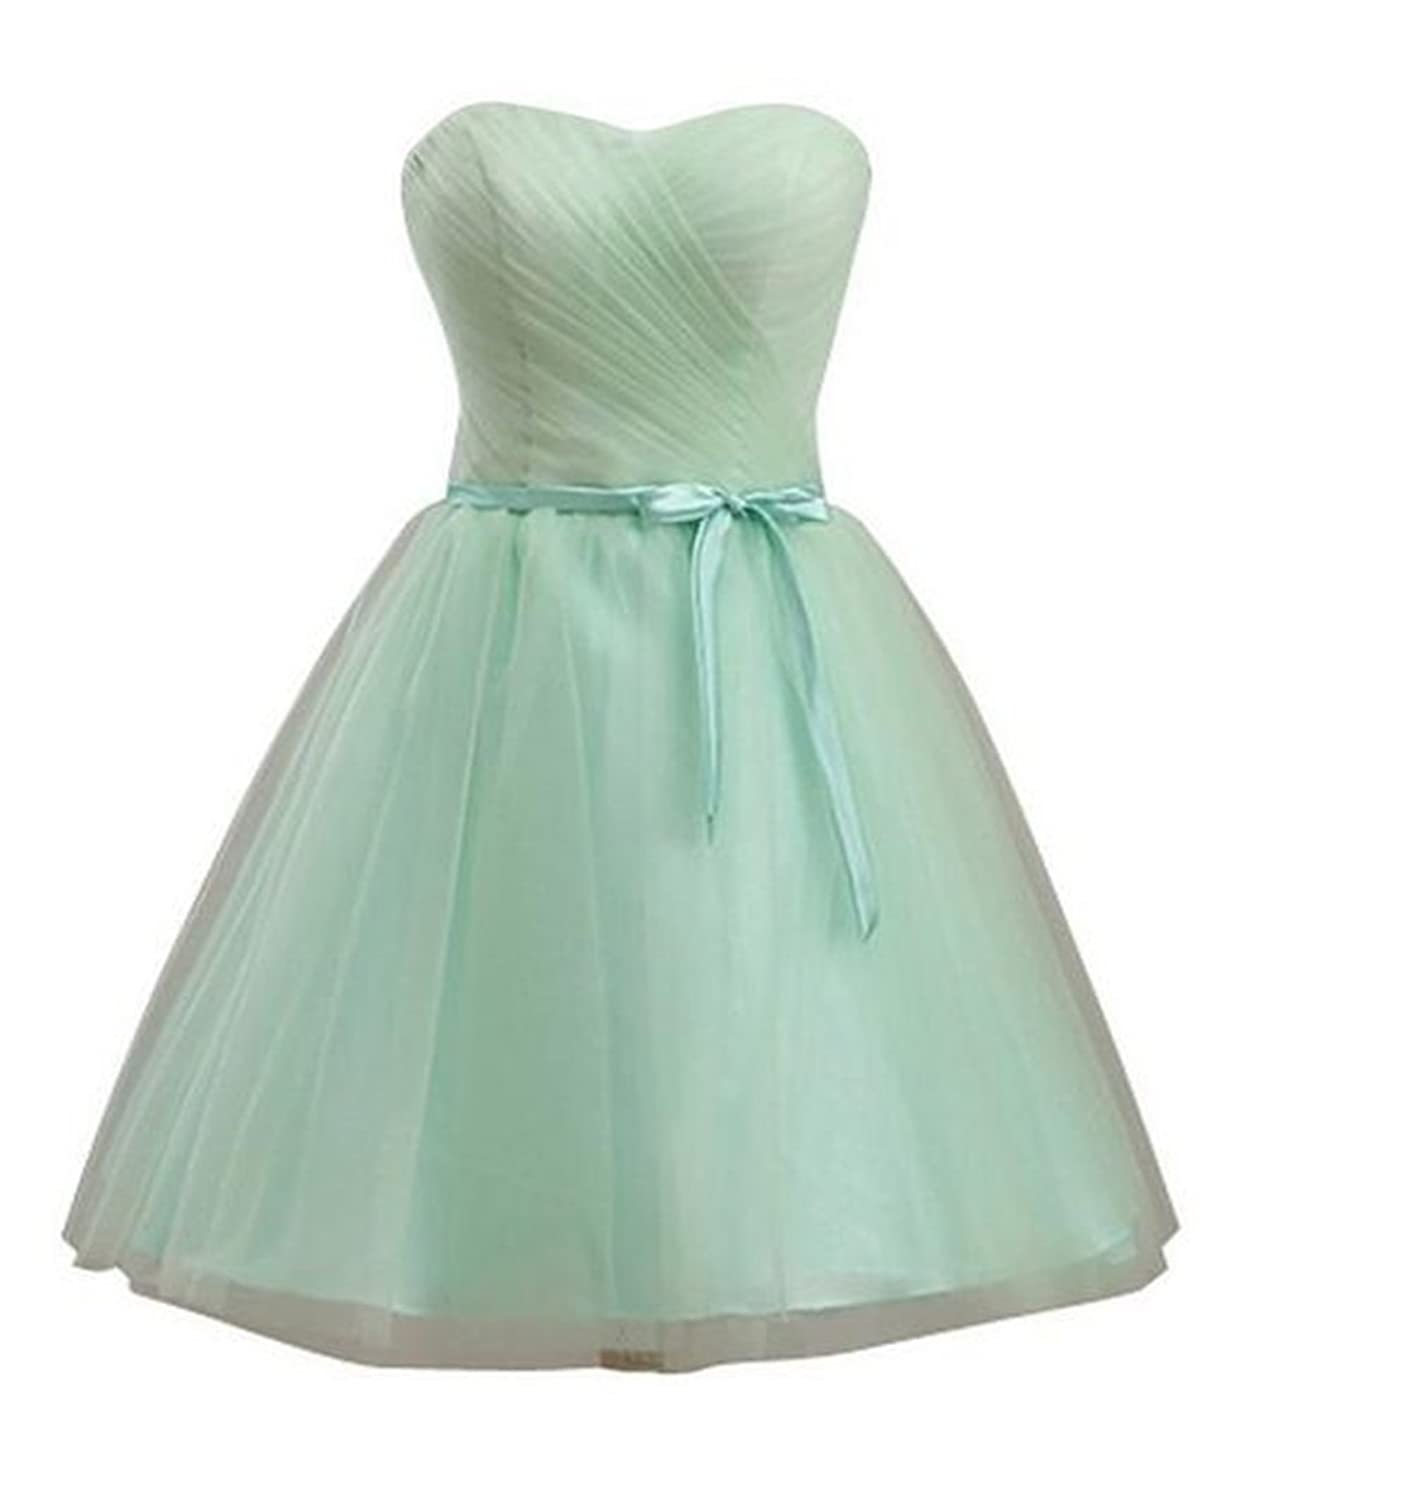 SimpleDressUK Short Women's Tulle Cocktail Party Dress Bridesmaid Dress